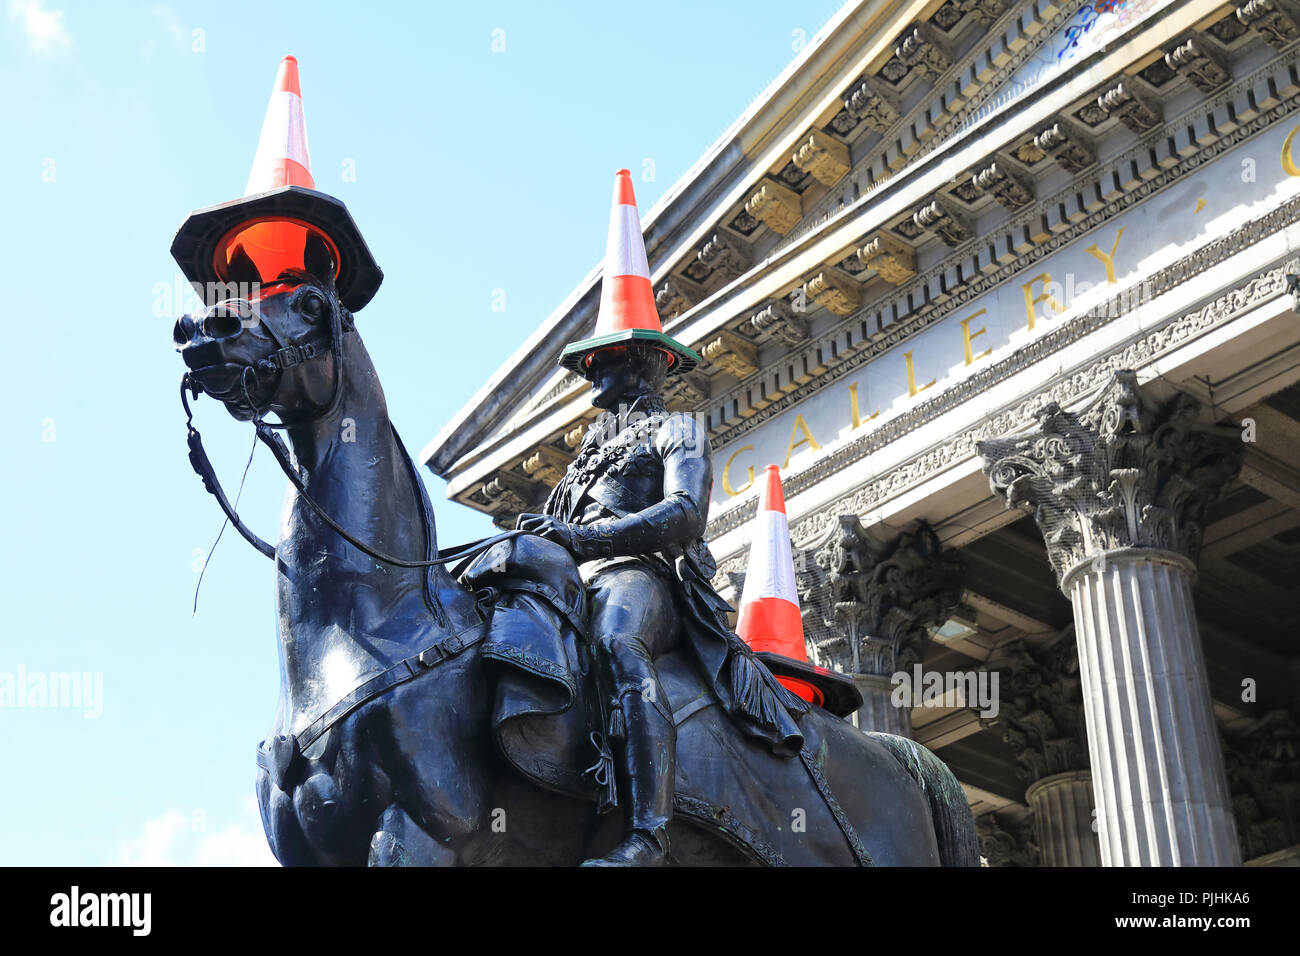 Traffic cones on the Duke of Wellington statue outside the Gallery of Modern Art, have come to represent the cultural identity of Glasgow in Scotlands - Stock Image